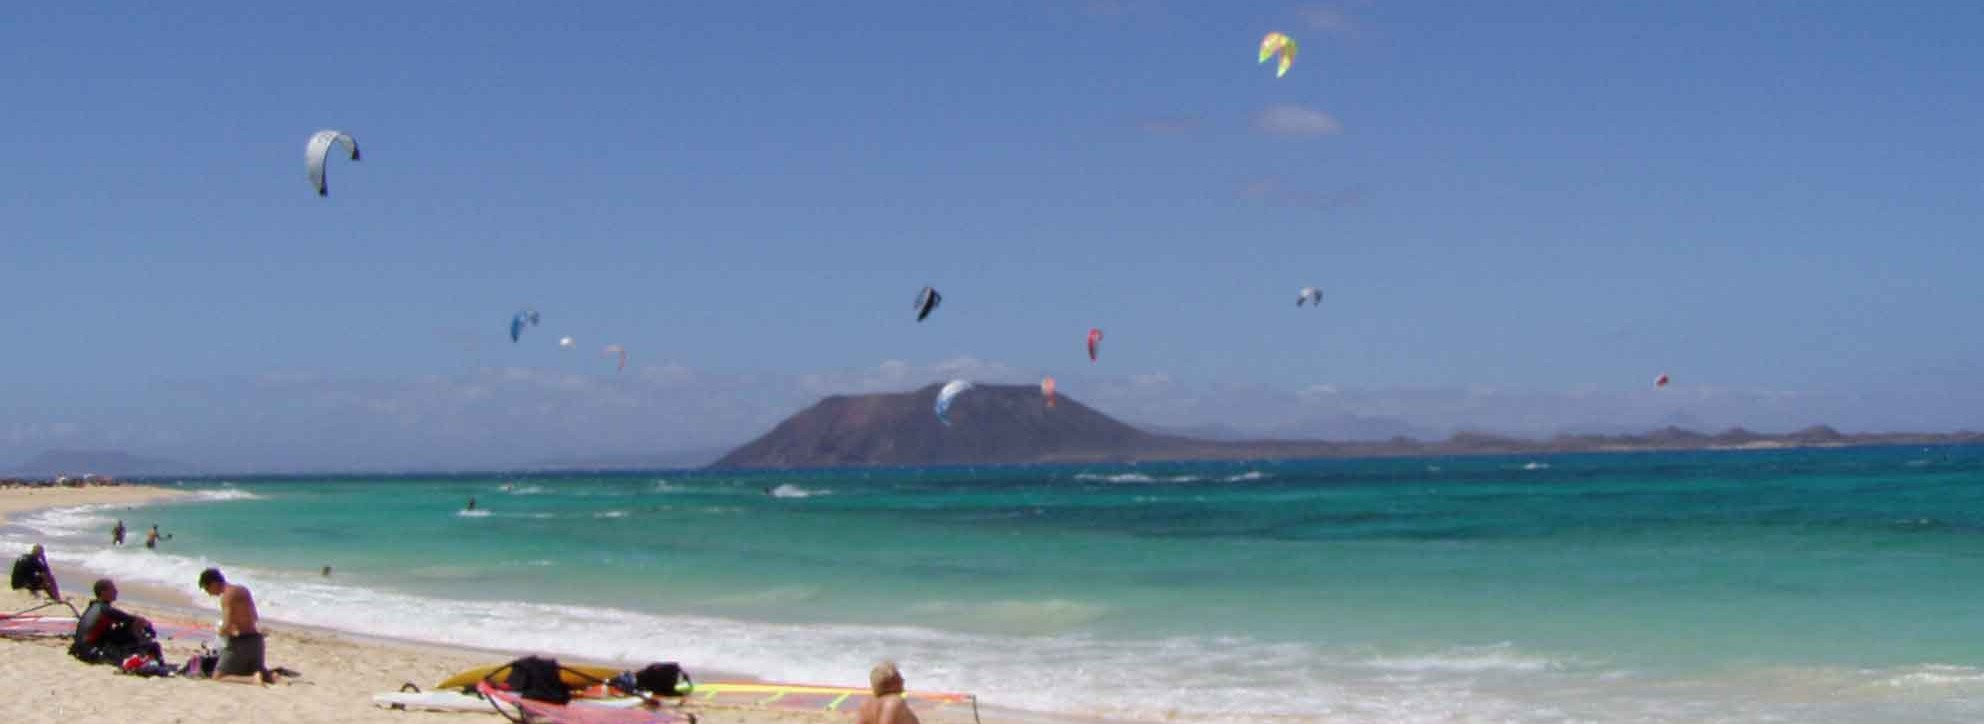 CORRALEJO KITING